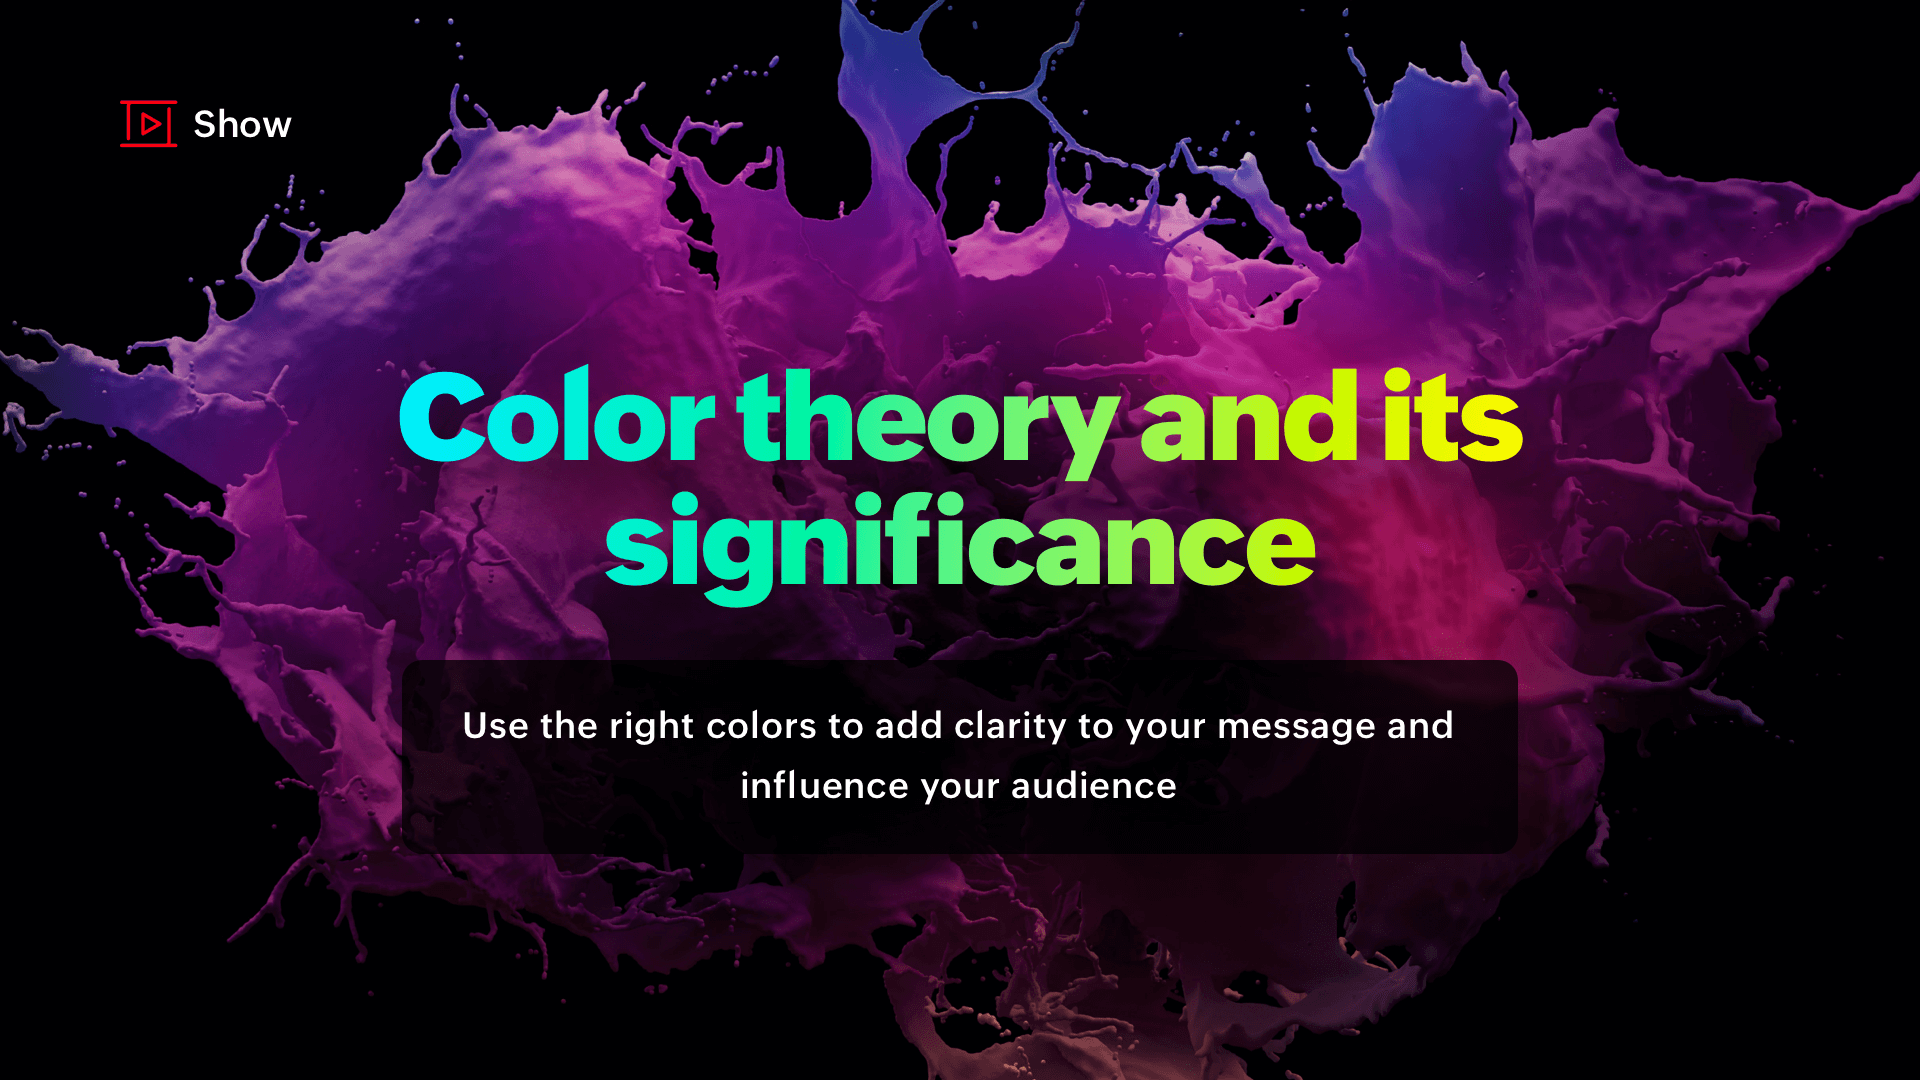 Color theory and its significance in presentations